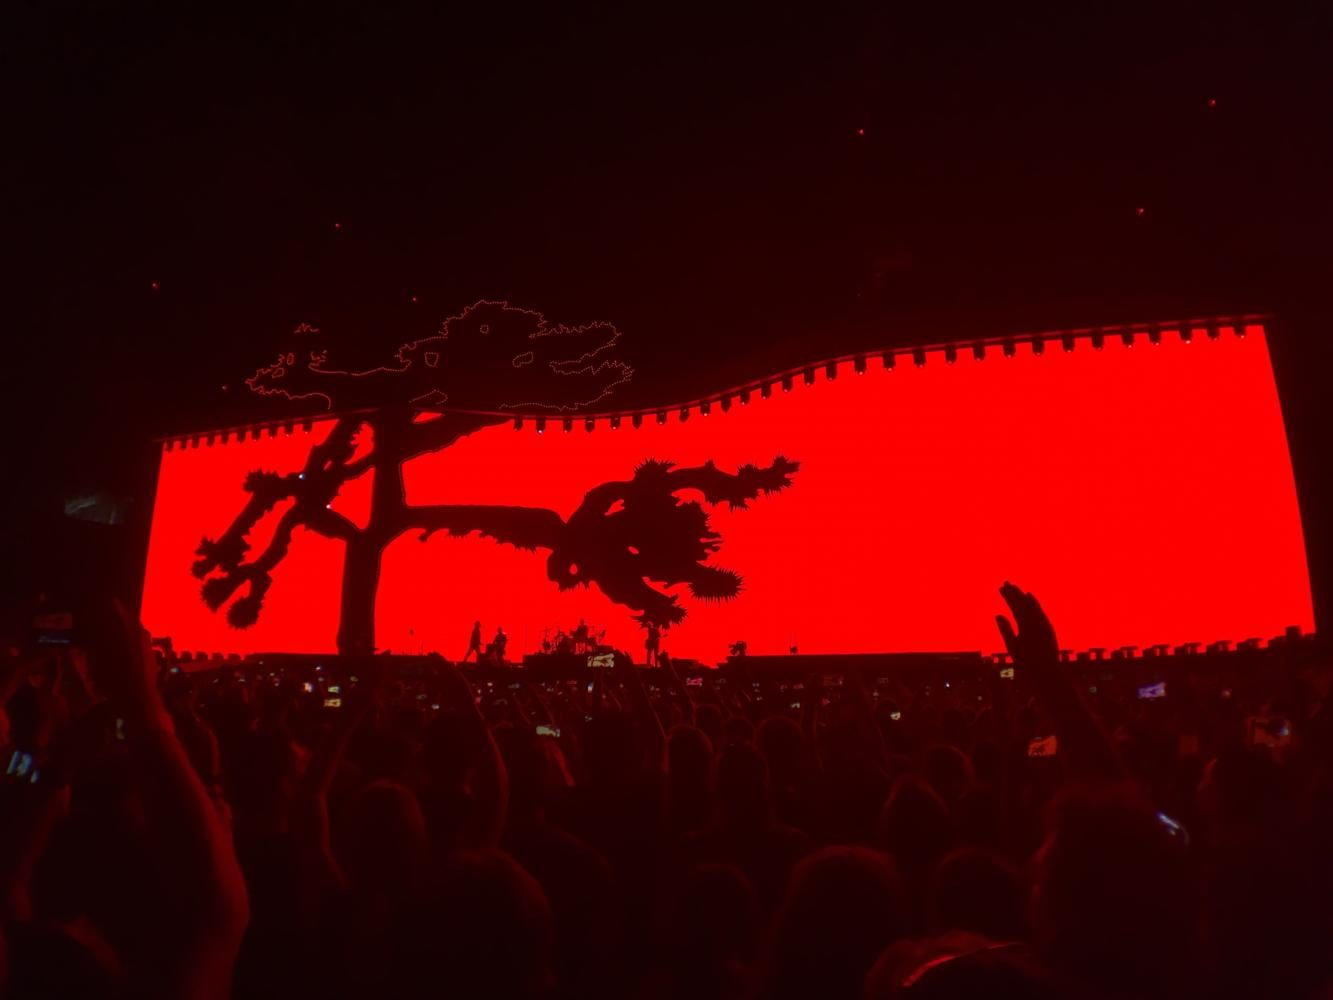 U2+appeared+in+front+of+a+200+foot+high+high+resolution+screen+for+the+whole+show+at+the+Rose+Bowl+in+Pasadena.